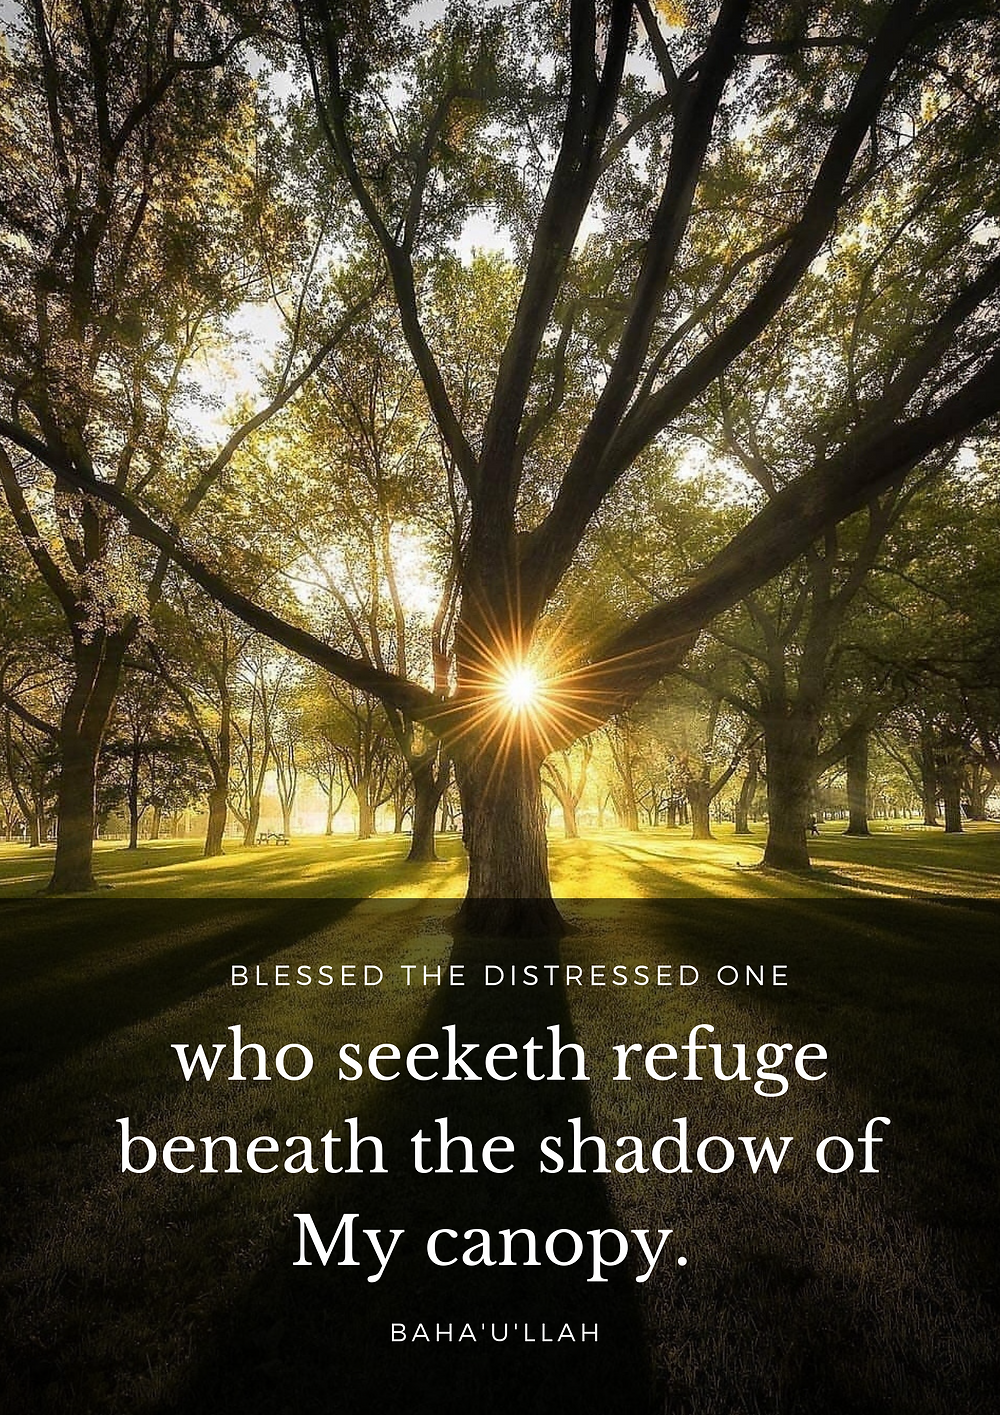 Blessed the distress one who seeketh refuge beneath the shadow of My canopy. - Baha'u'llah